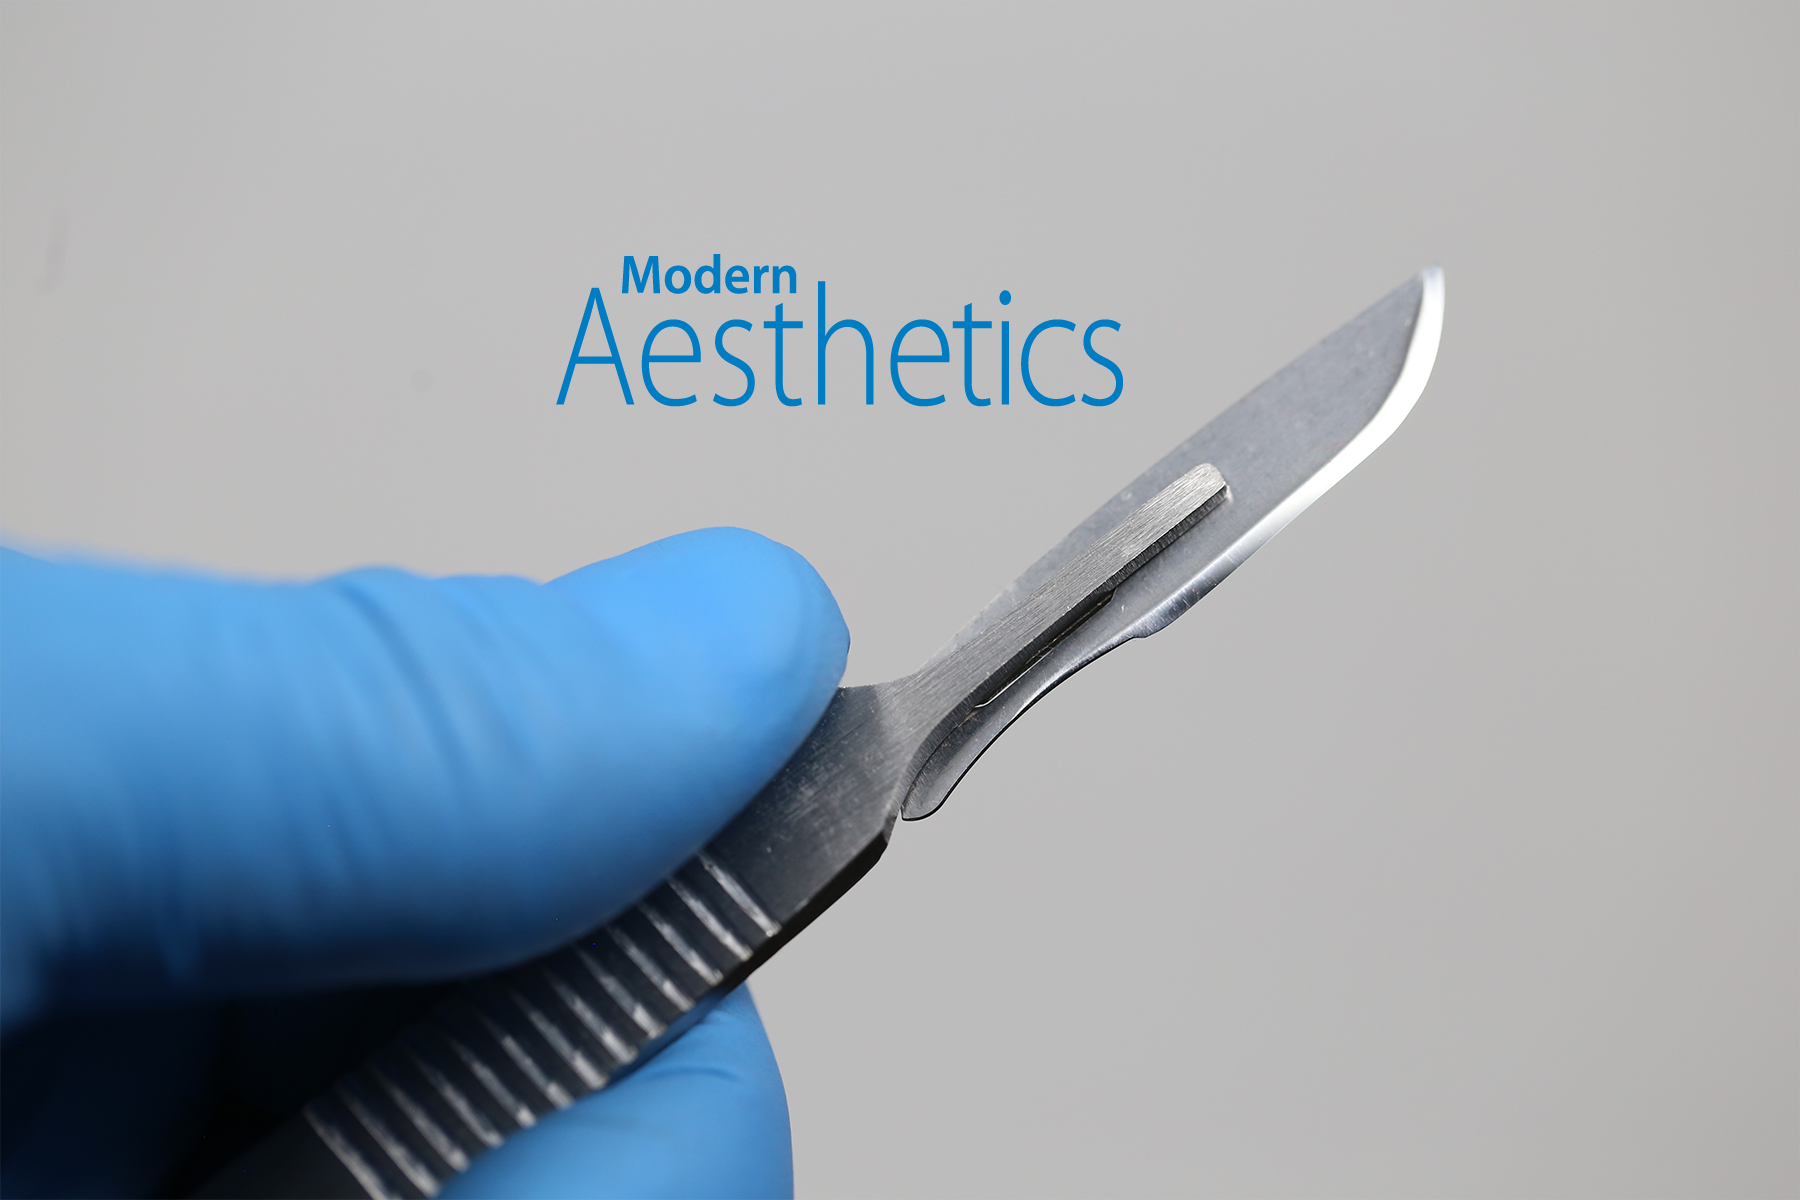 Sachin M. Shridharani, MD, FACS With Modern Aesthetics – My New Favorite Thing: Planatome Technology.